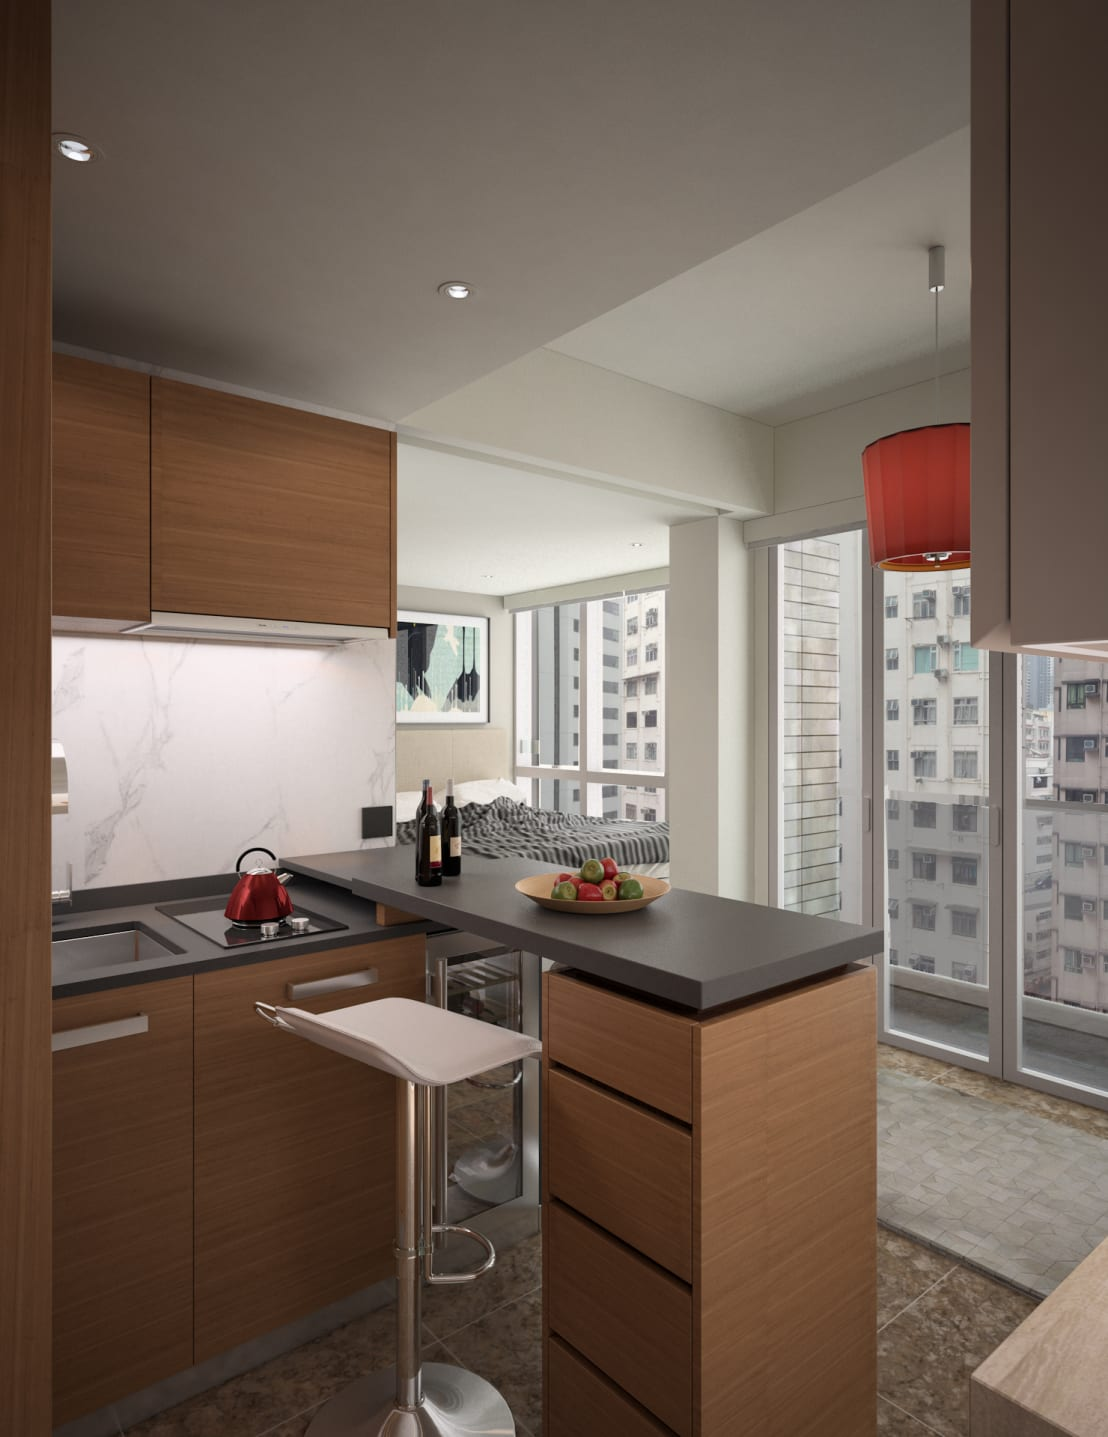 Nelson w design south lane kennedy town hong kong homify Kitchen design companies hong kong